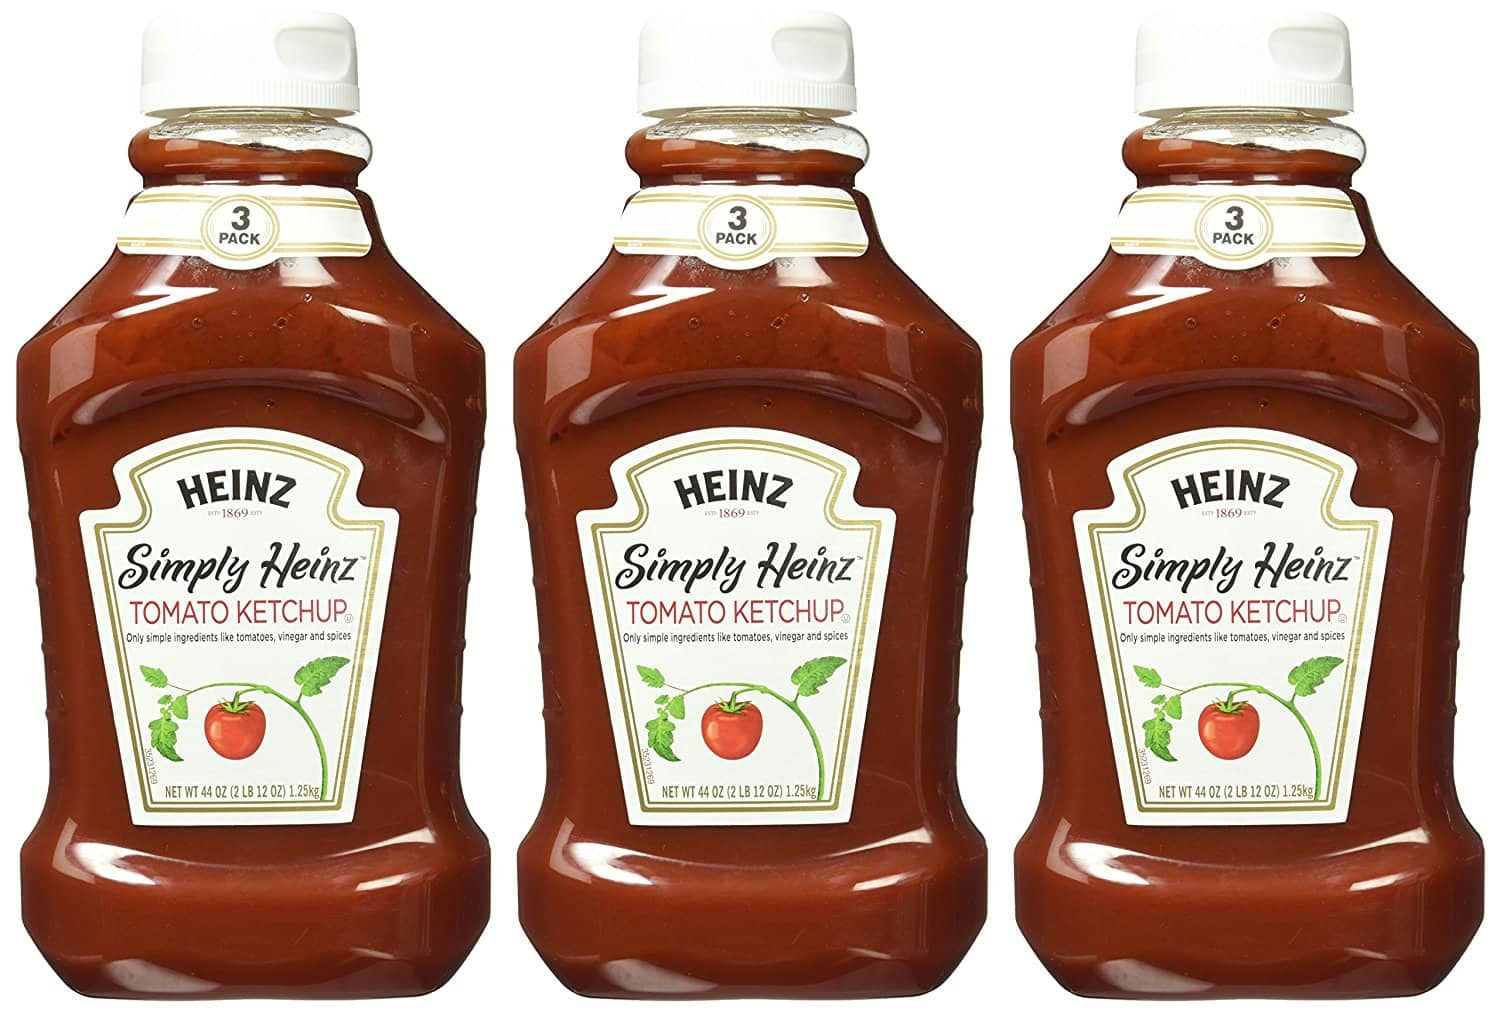 3-Pack of 44oz Simply Heinz Tomato Ketchup $7.88 or Less w/ S&S + Free Shipping ~ Amazon